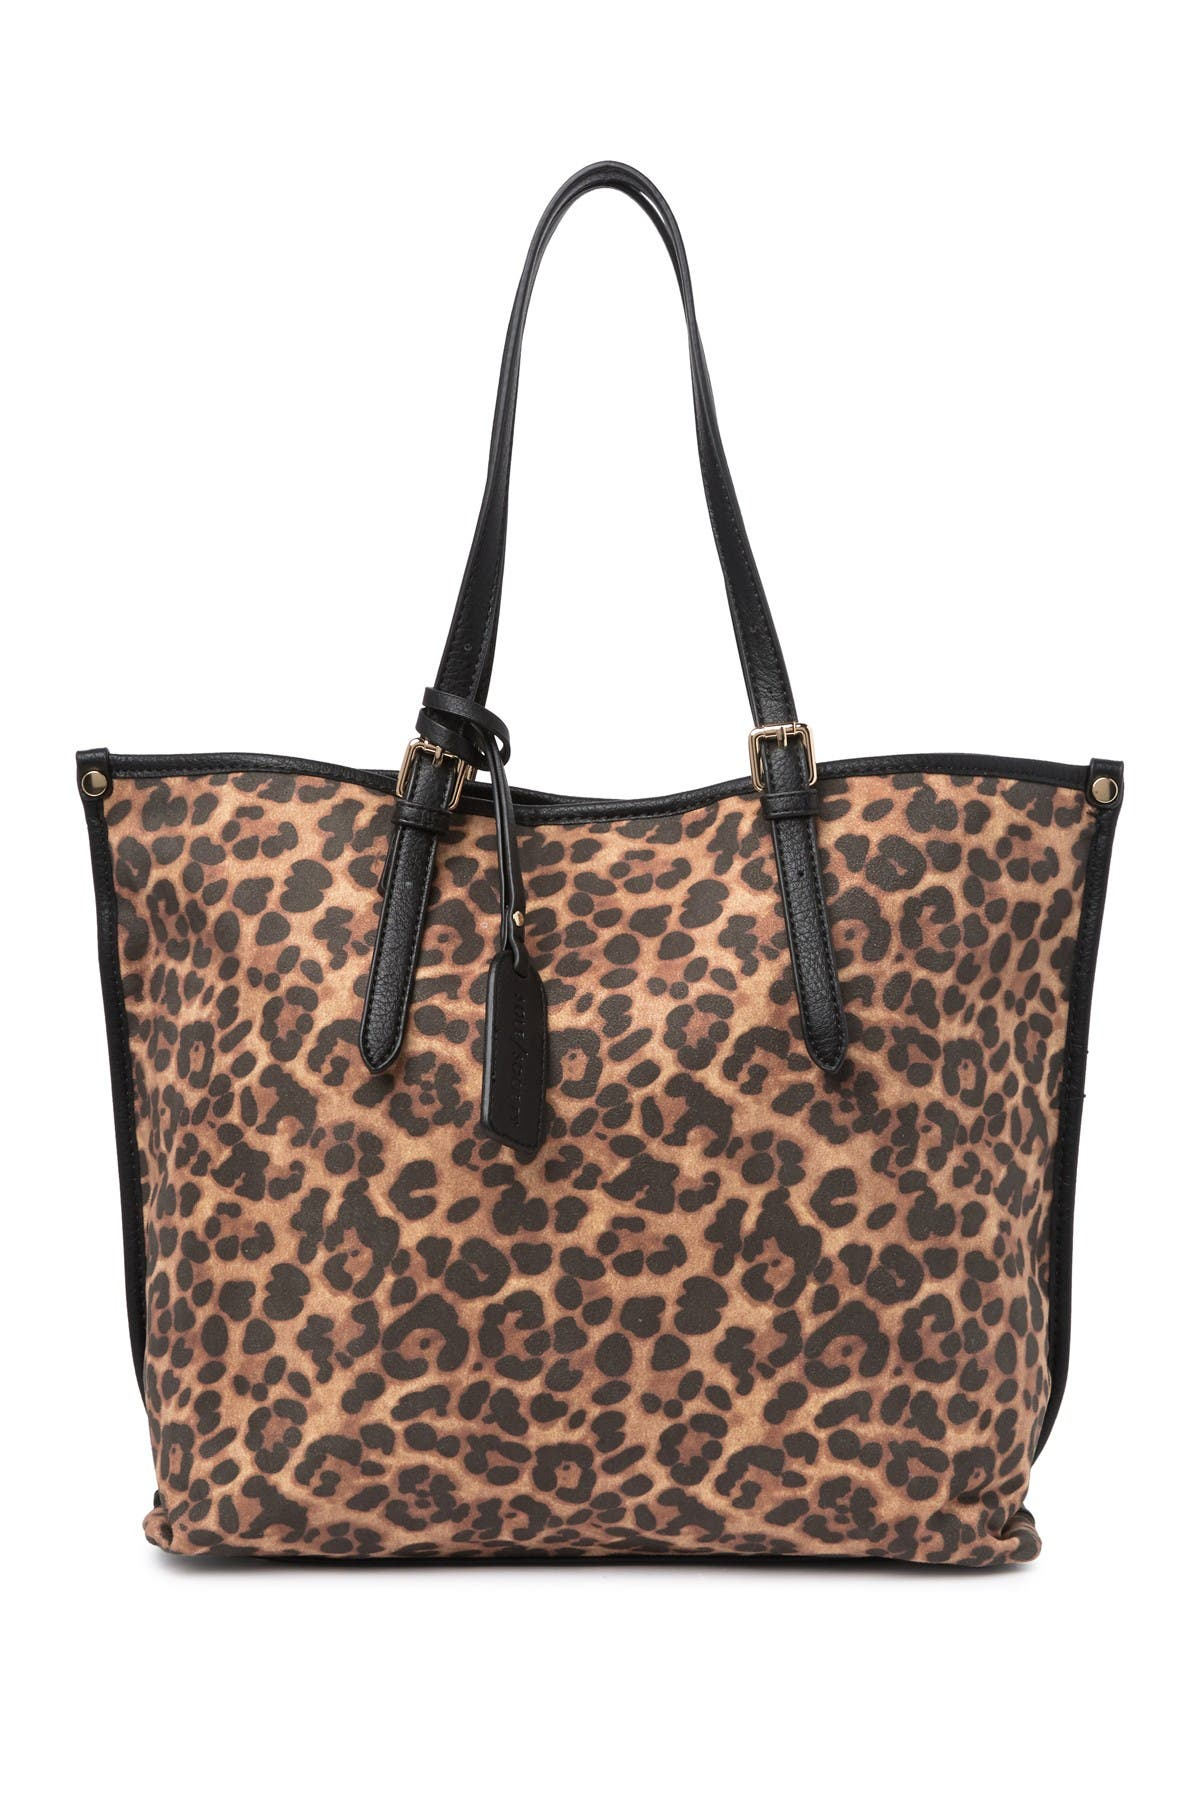 Image of Sole Society Grace Tote